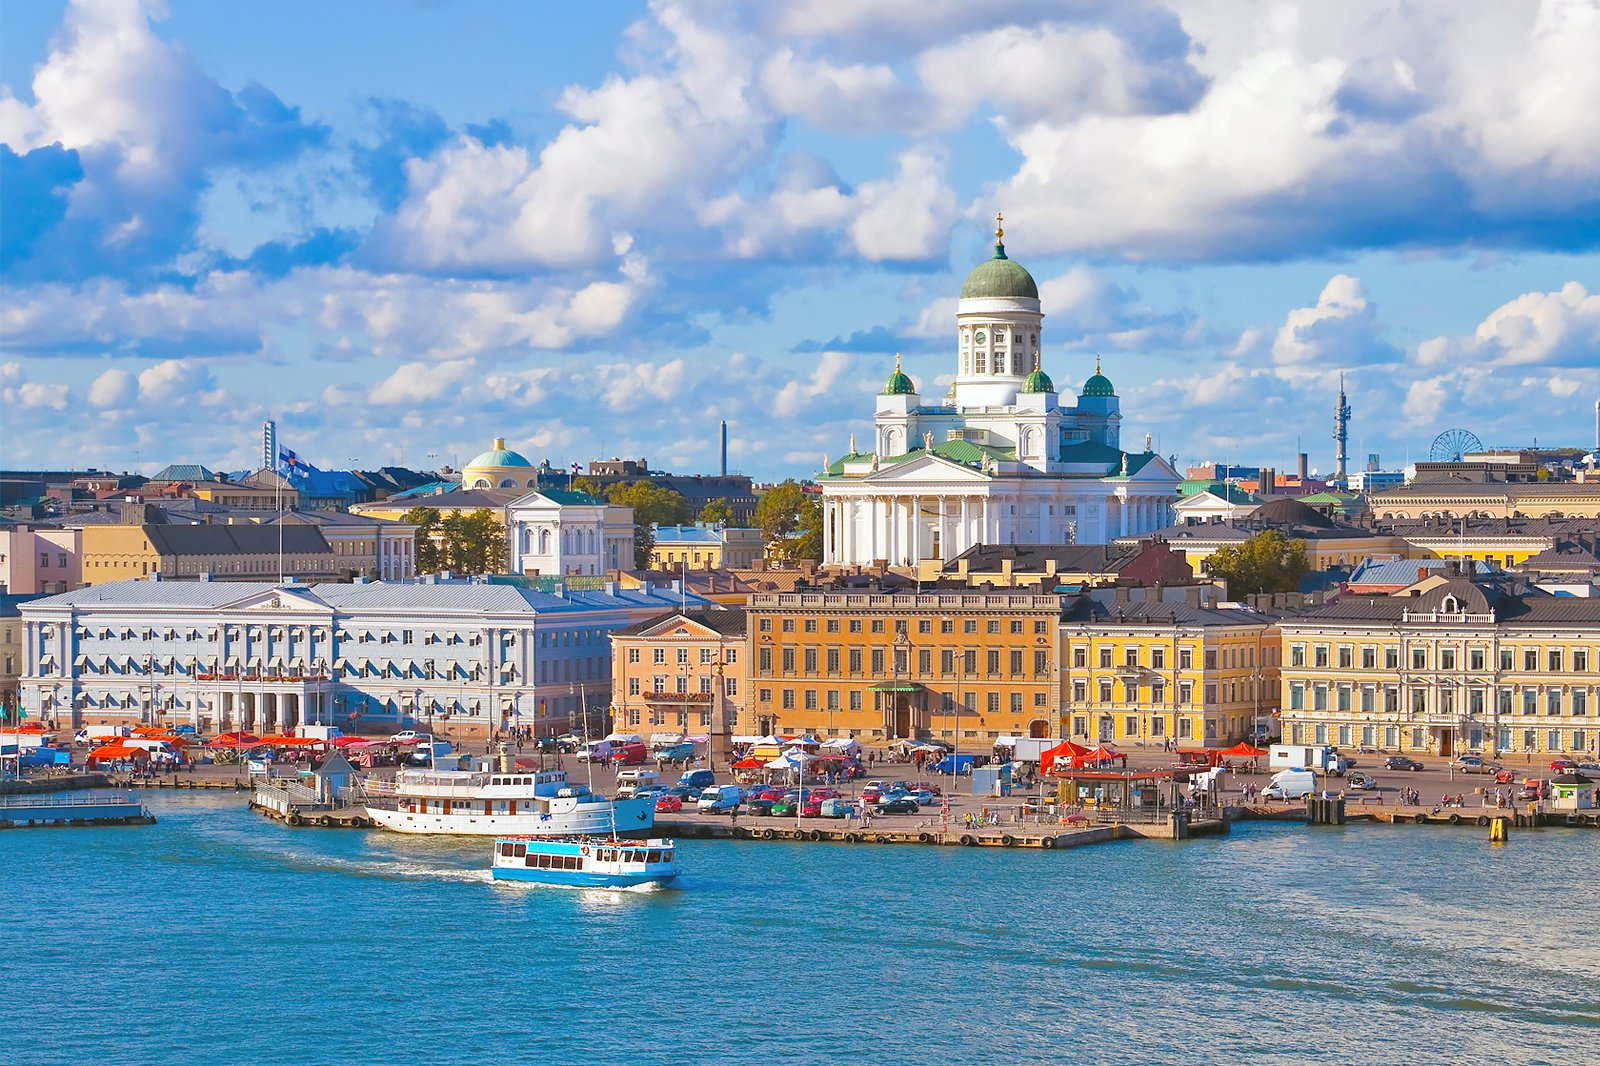 11 Best Things to Do in Helsinki - What is Helsinki Most Famous For?